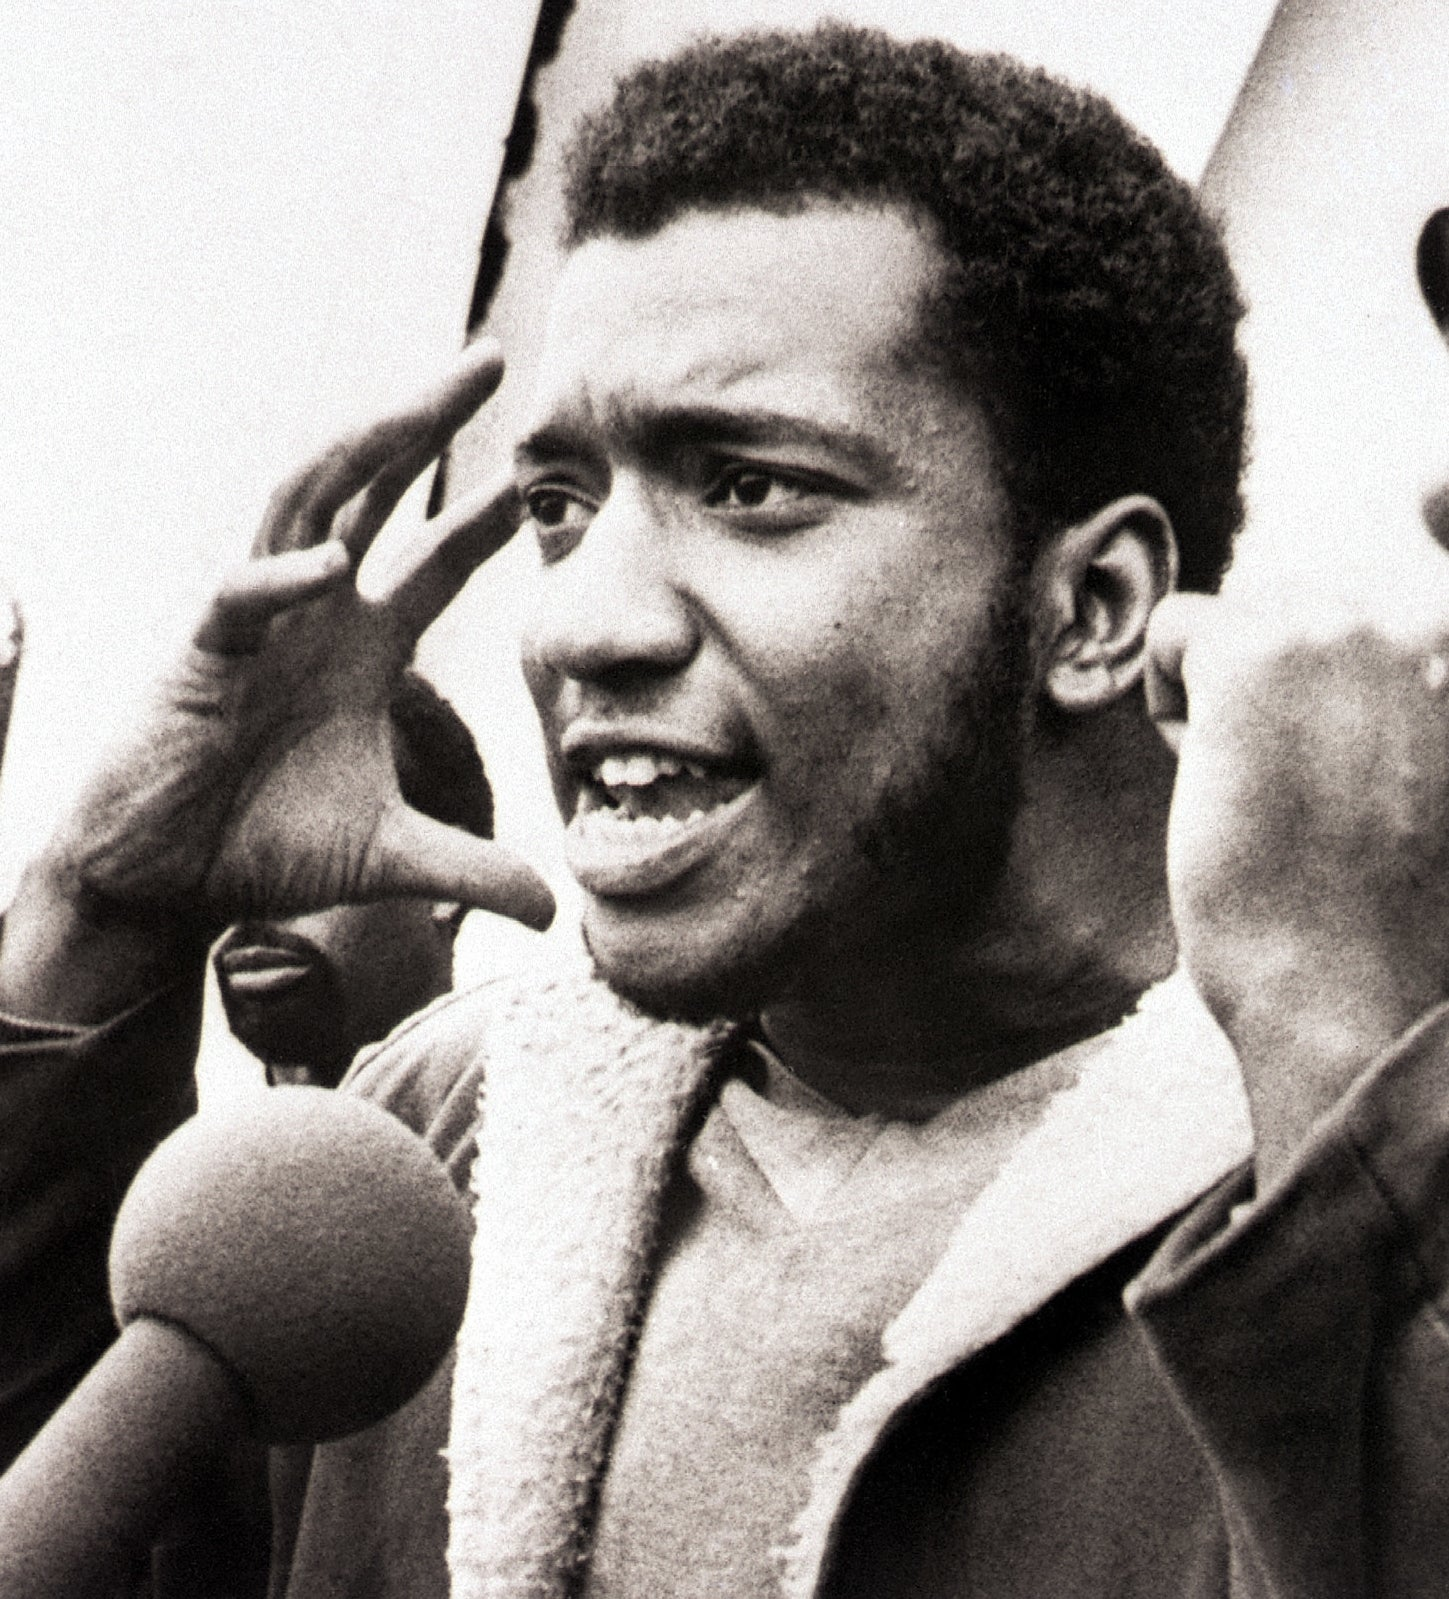 An archive photo shows Fred Hampton in the middle of saying something with his arms up.